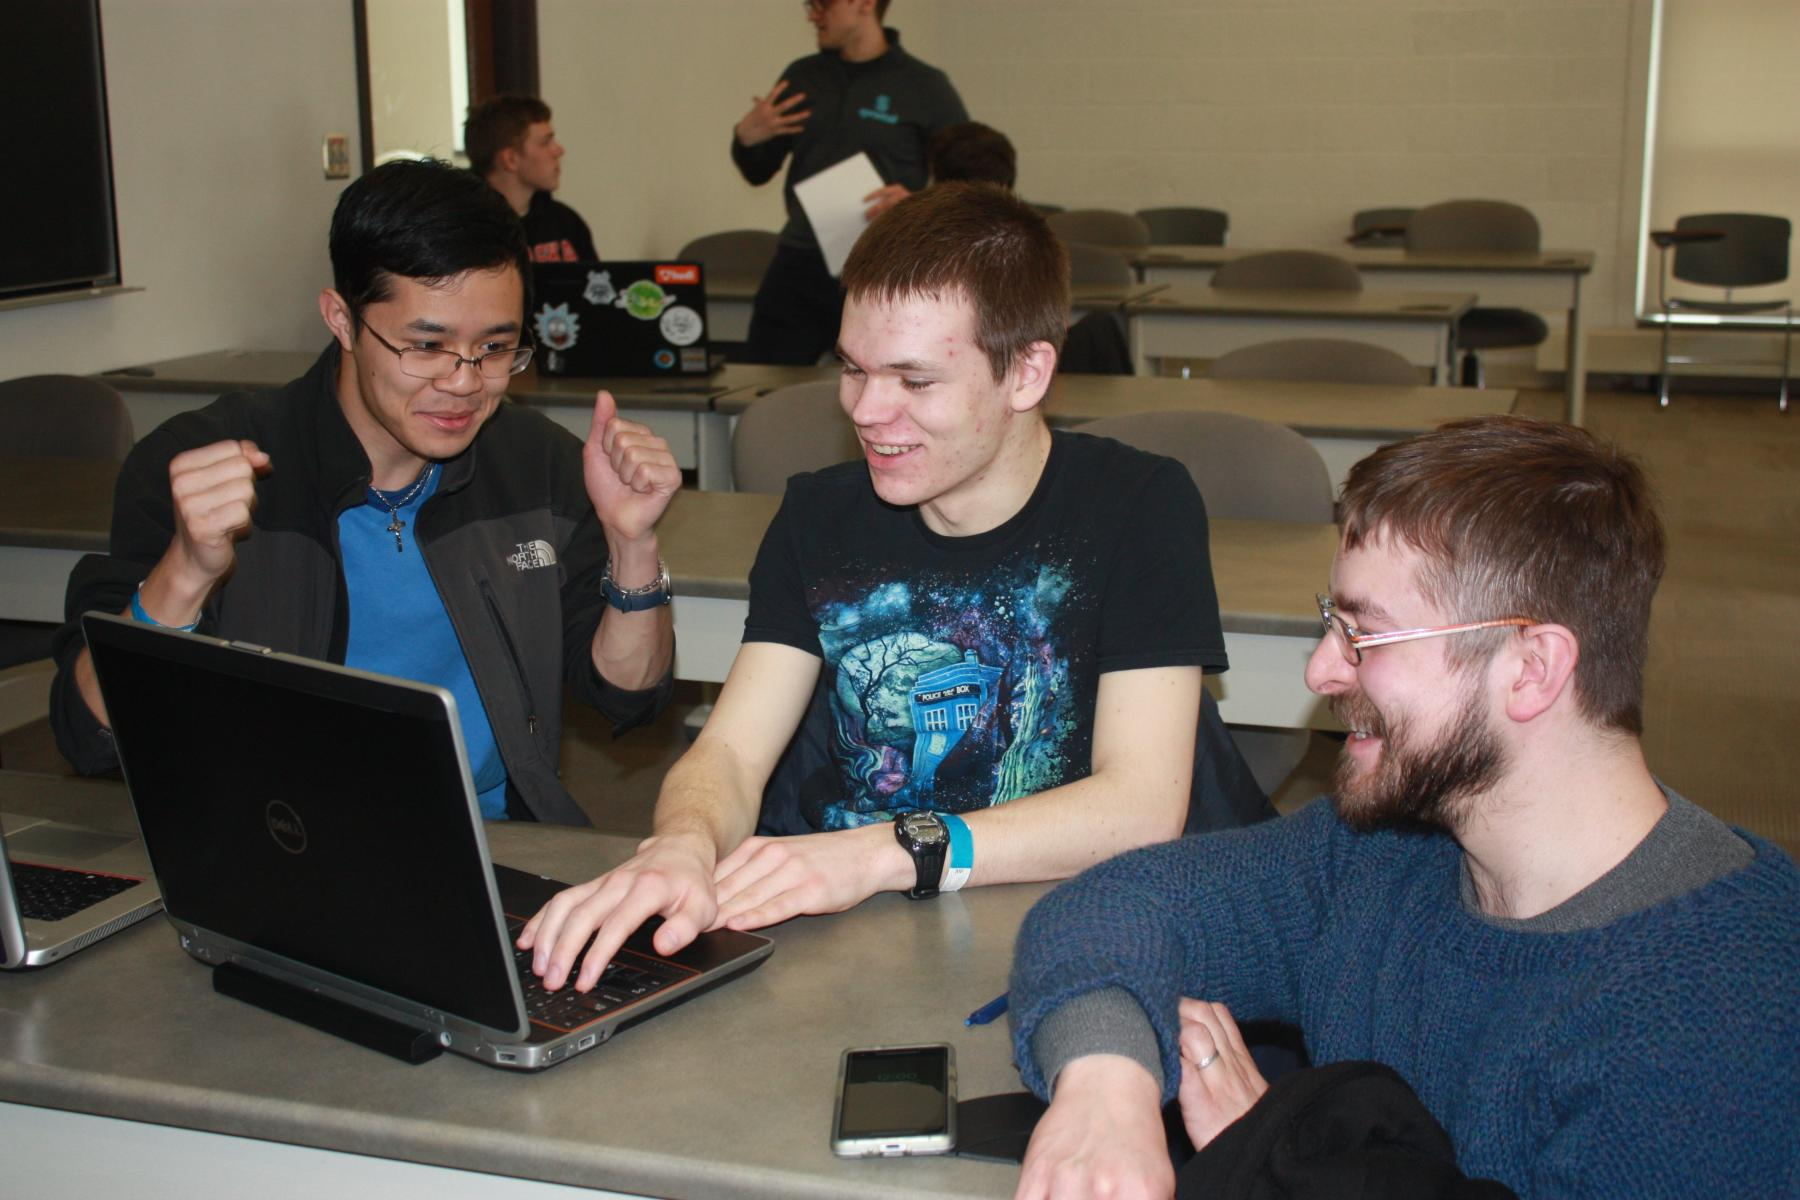 Students at a Computer Science and Engineering camp.